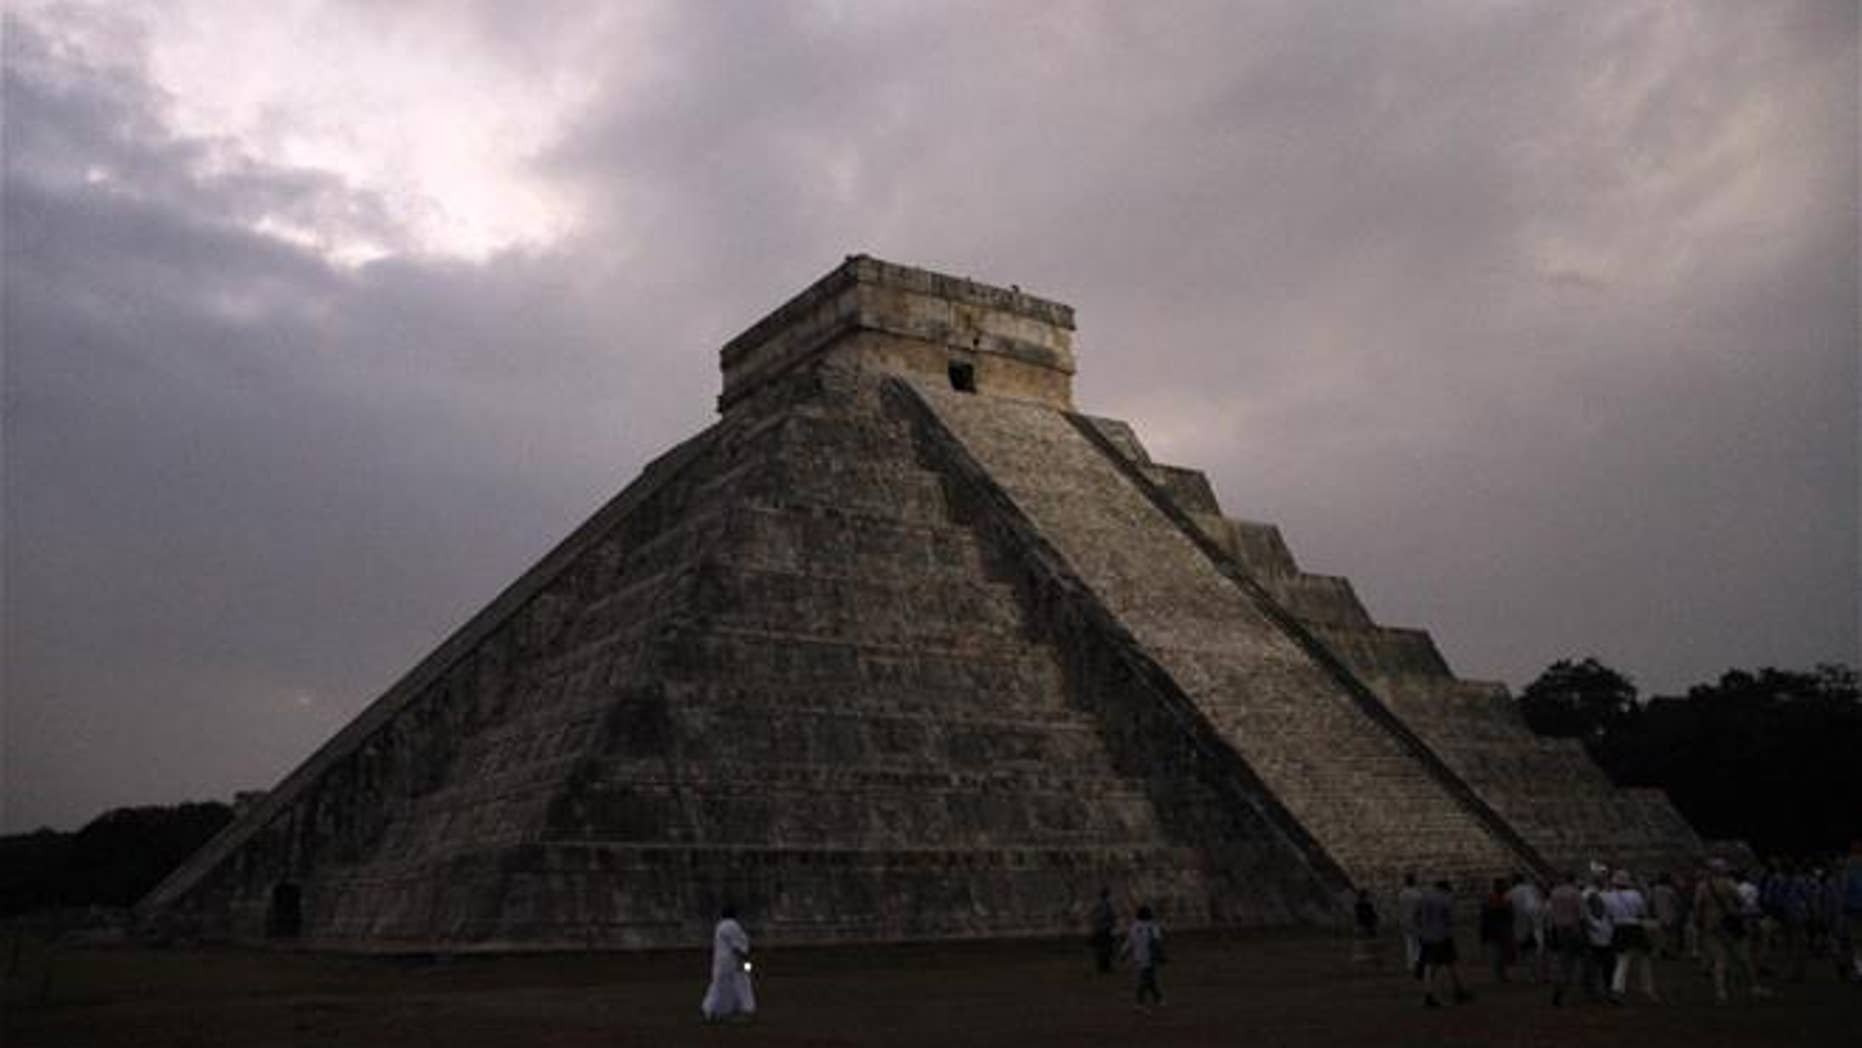 This 2012 photo shows the Kukulkan temple in Chichen Itza, Mexico.